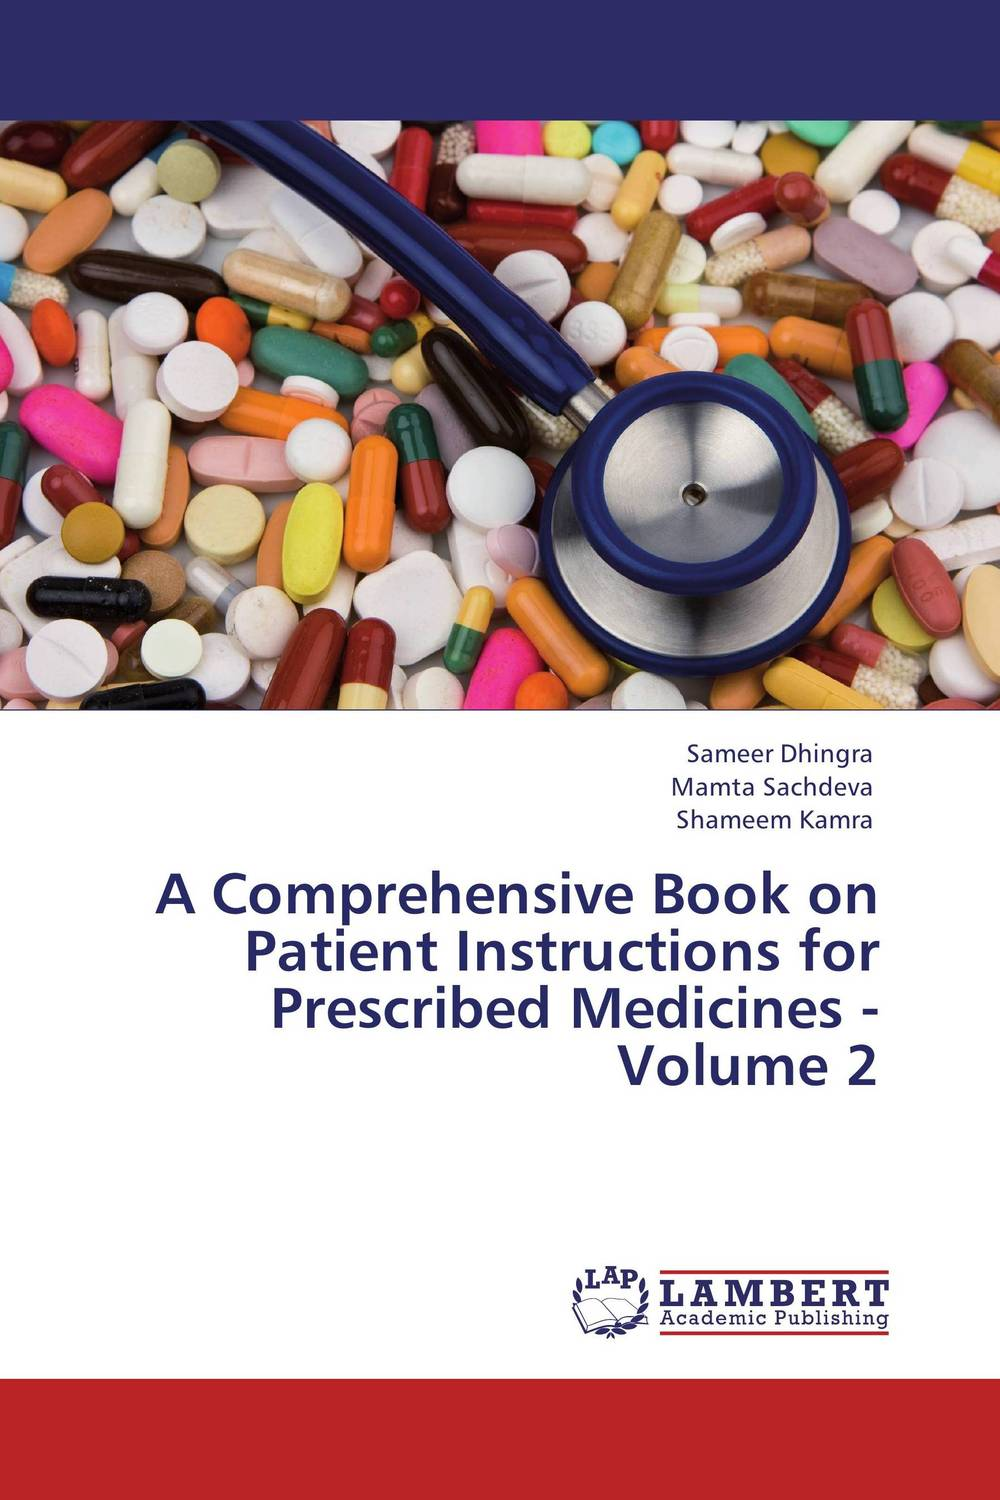 A Comprehensive Book on Patient Instructions for Prescribed Medicines - Volume 2 teddy mars book 2 almost a winner